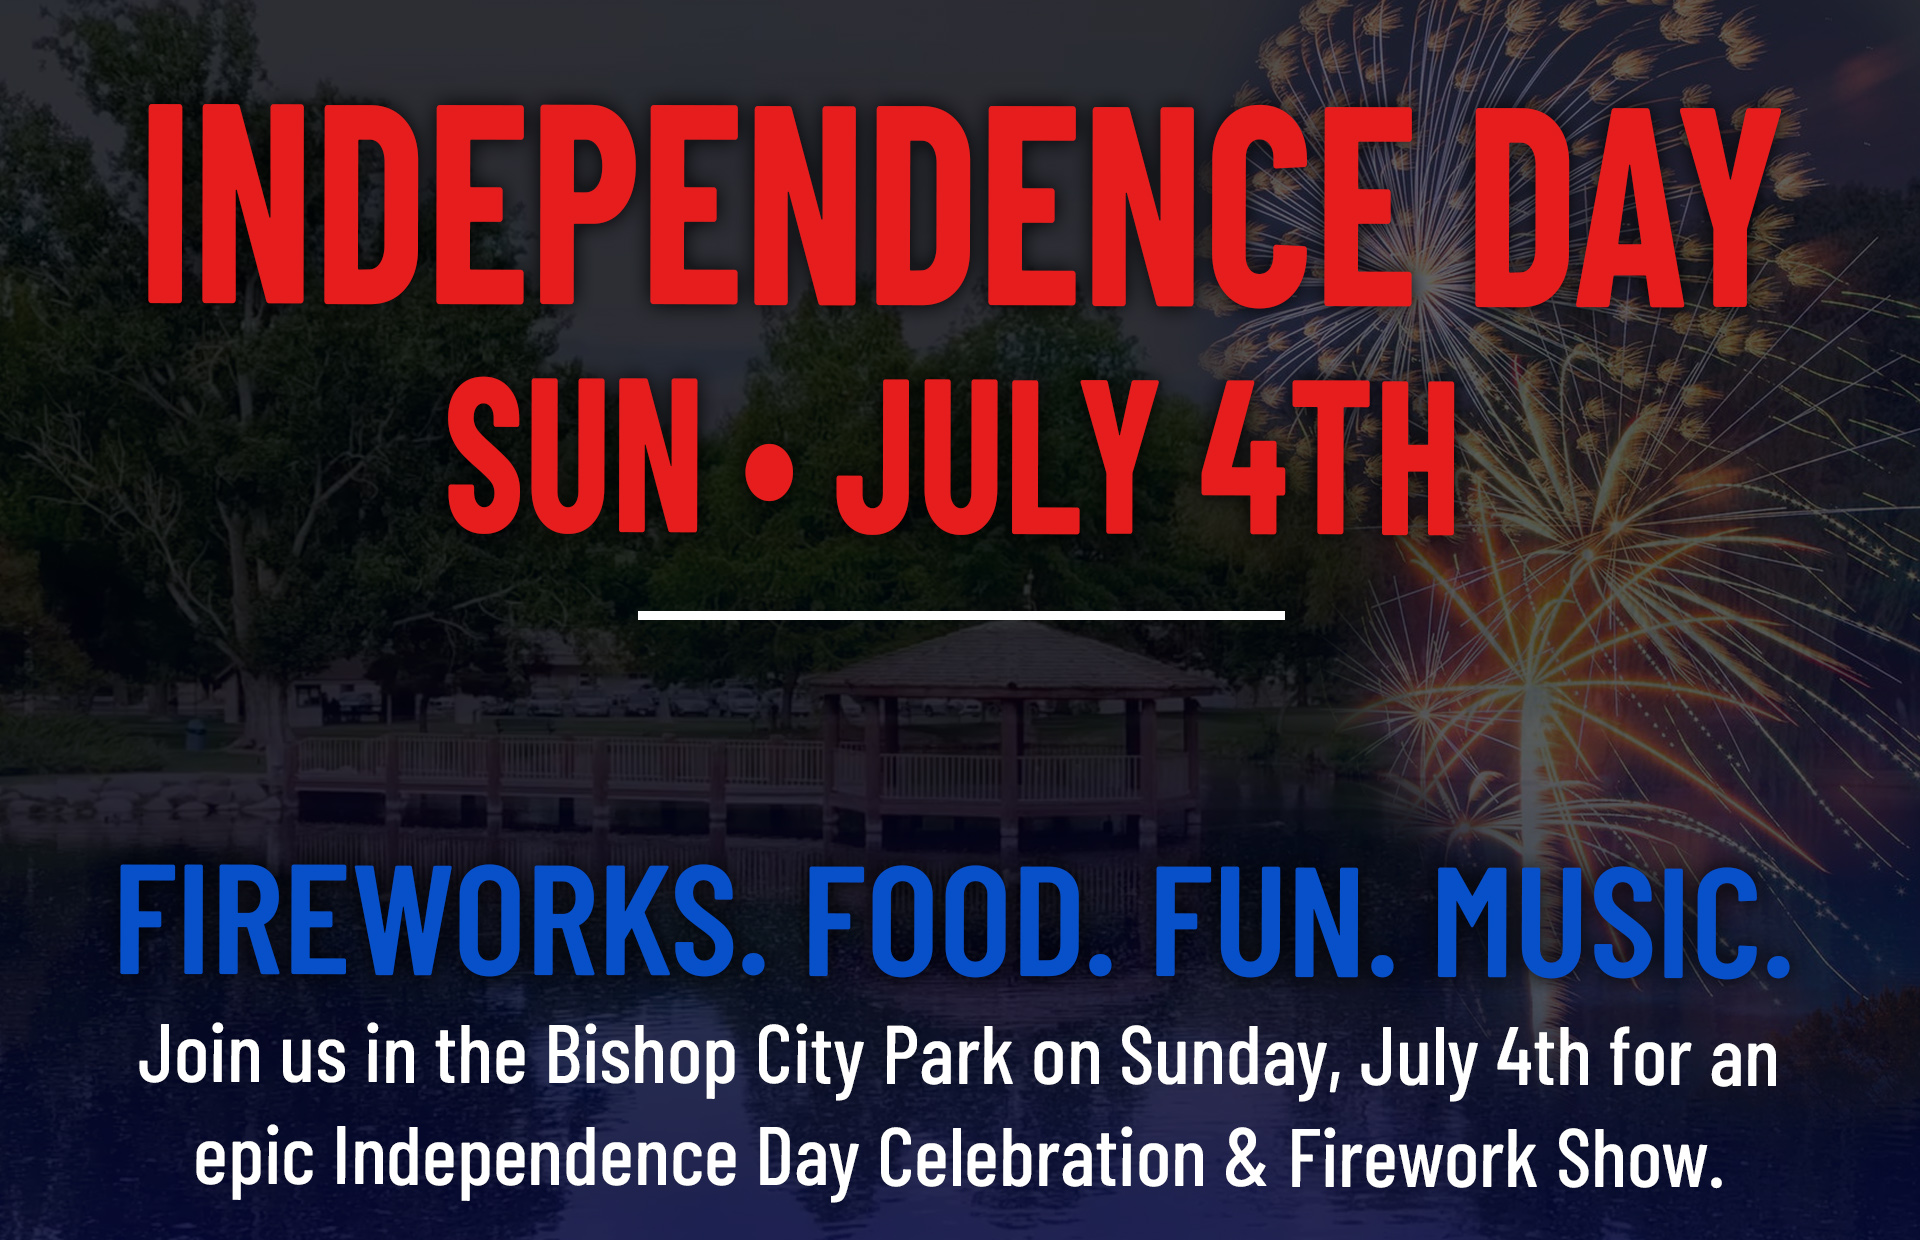 4th in the bishop city park community sponsors